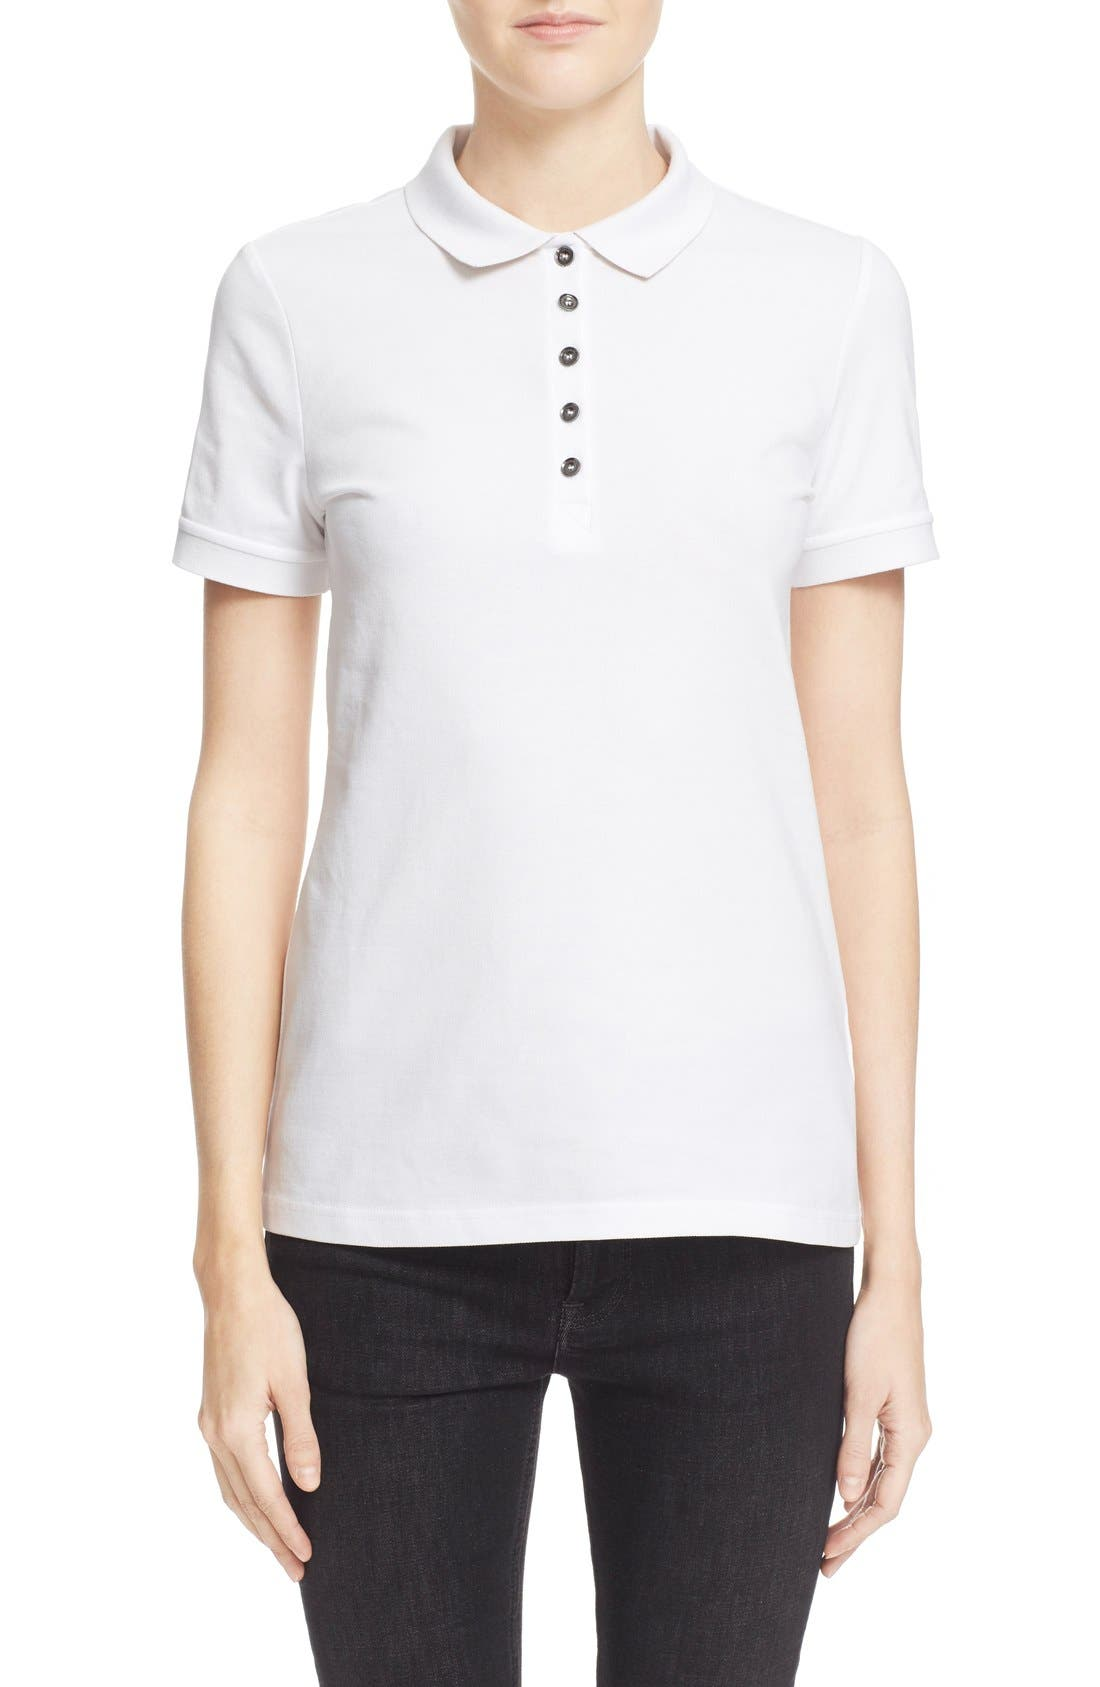 BURBERRY Check Trim Piqué Polo Shirt